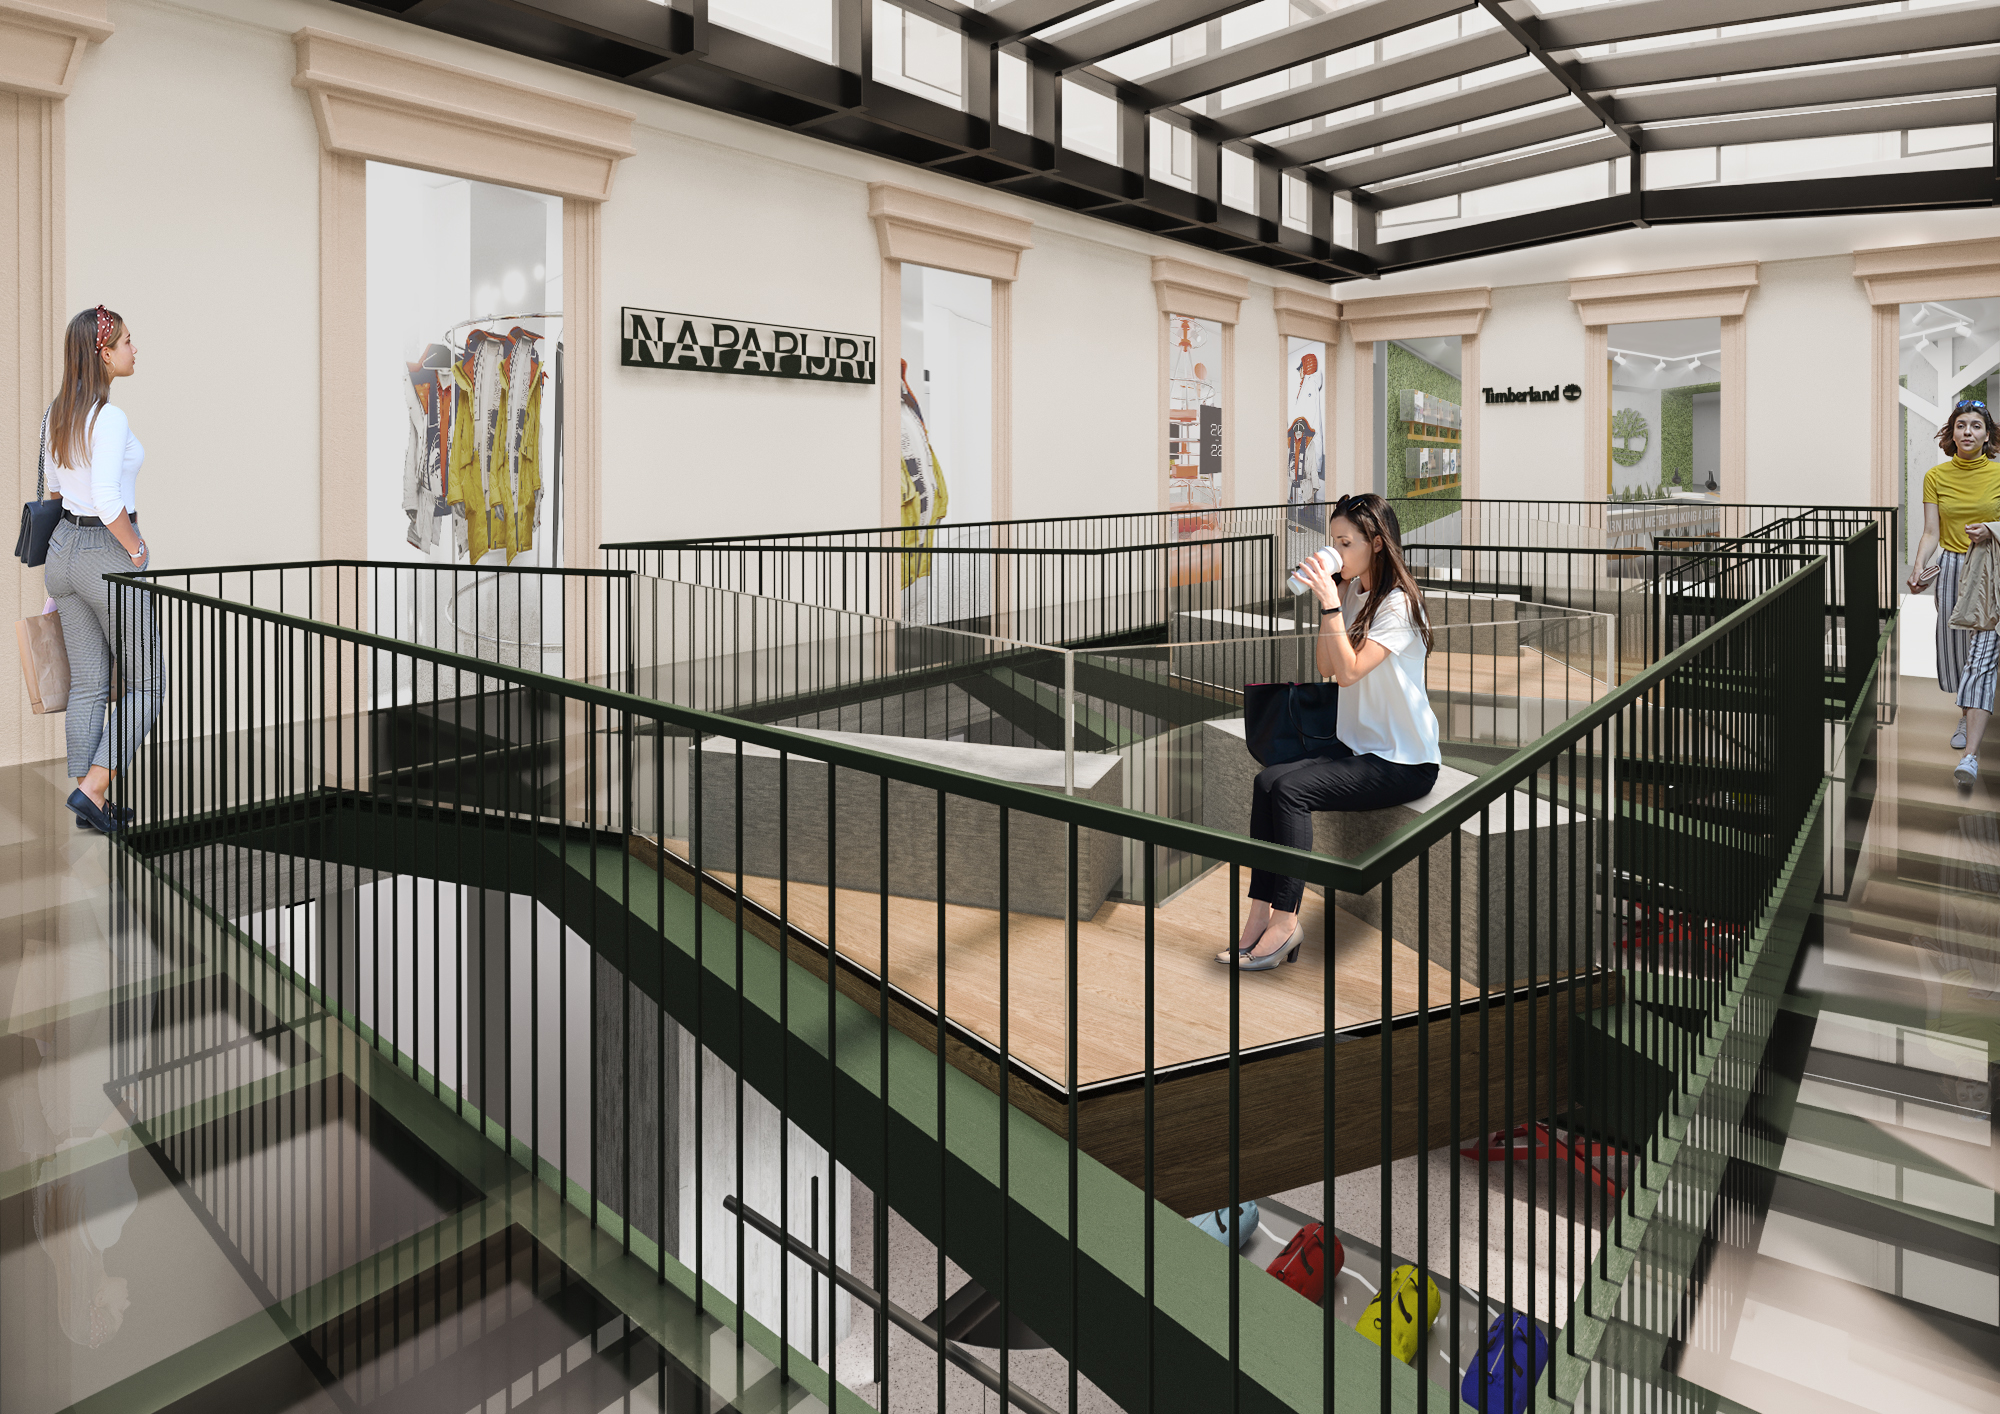 VF Corporation to Open a New Multi-brand Retail Store in Milan